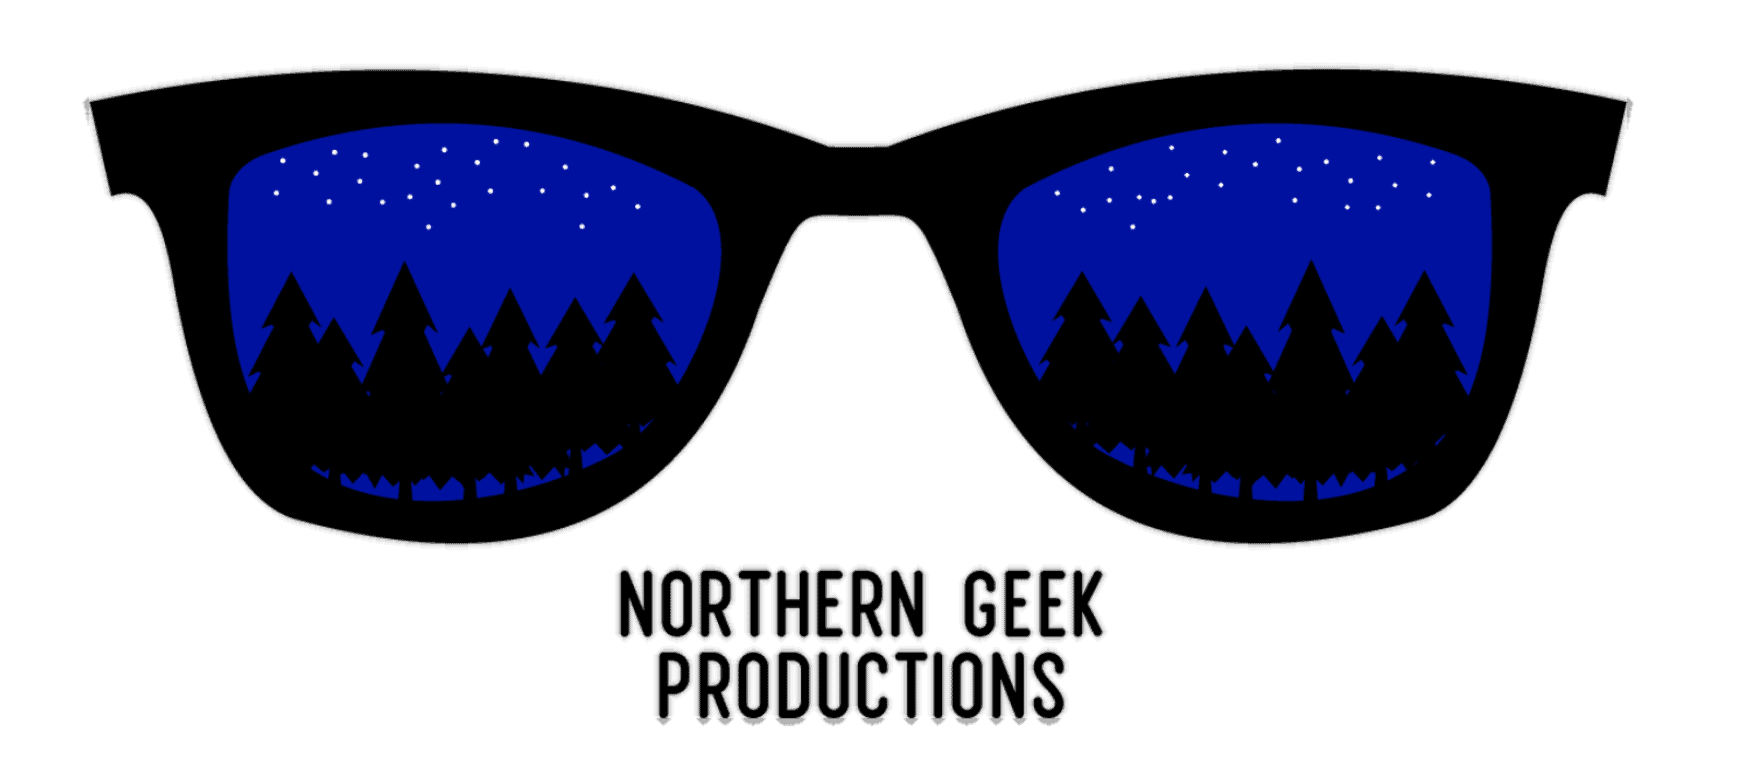 Northern Geek Productions logo